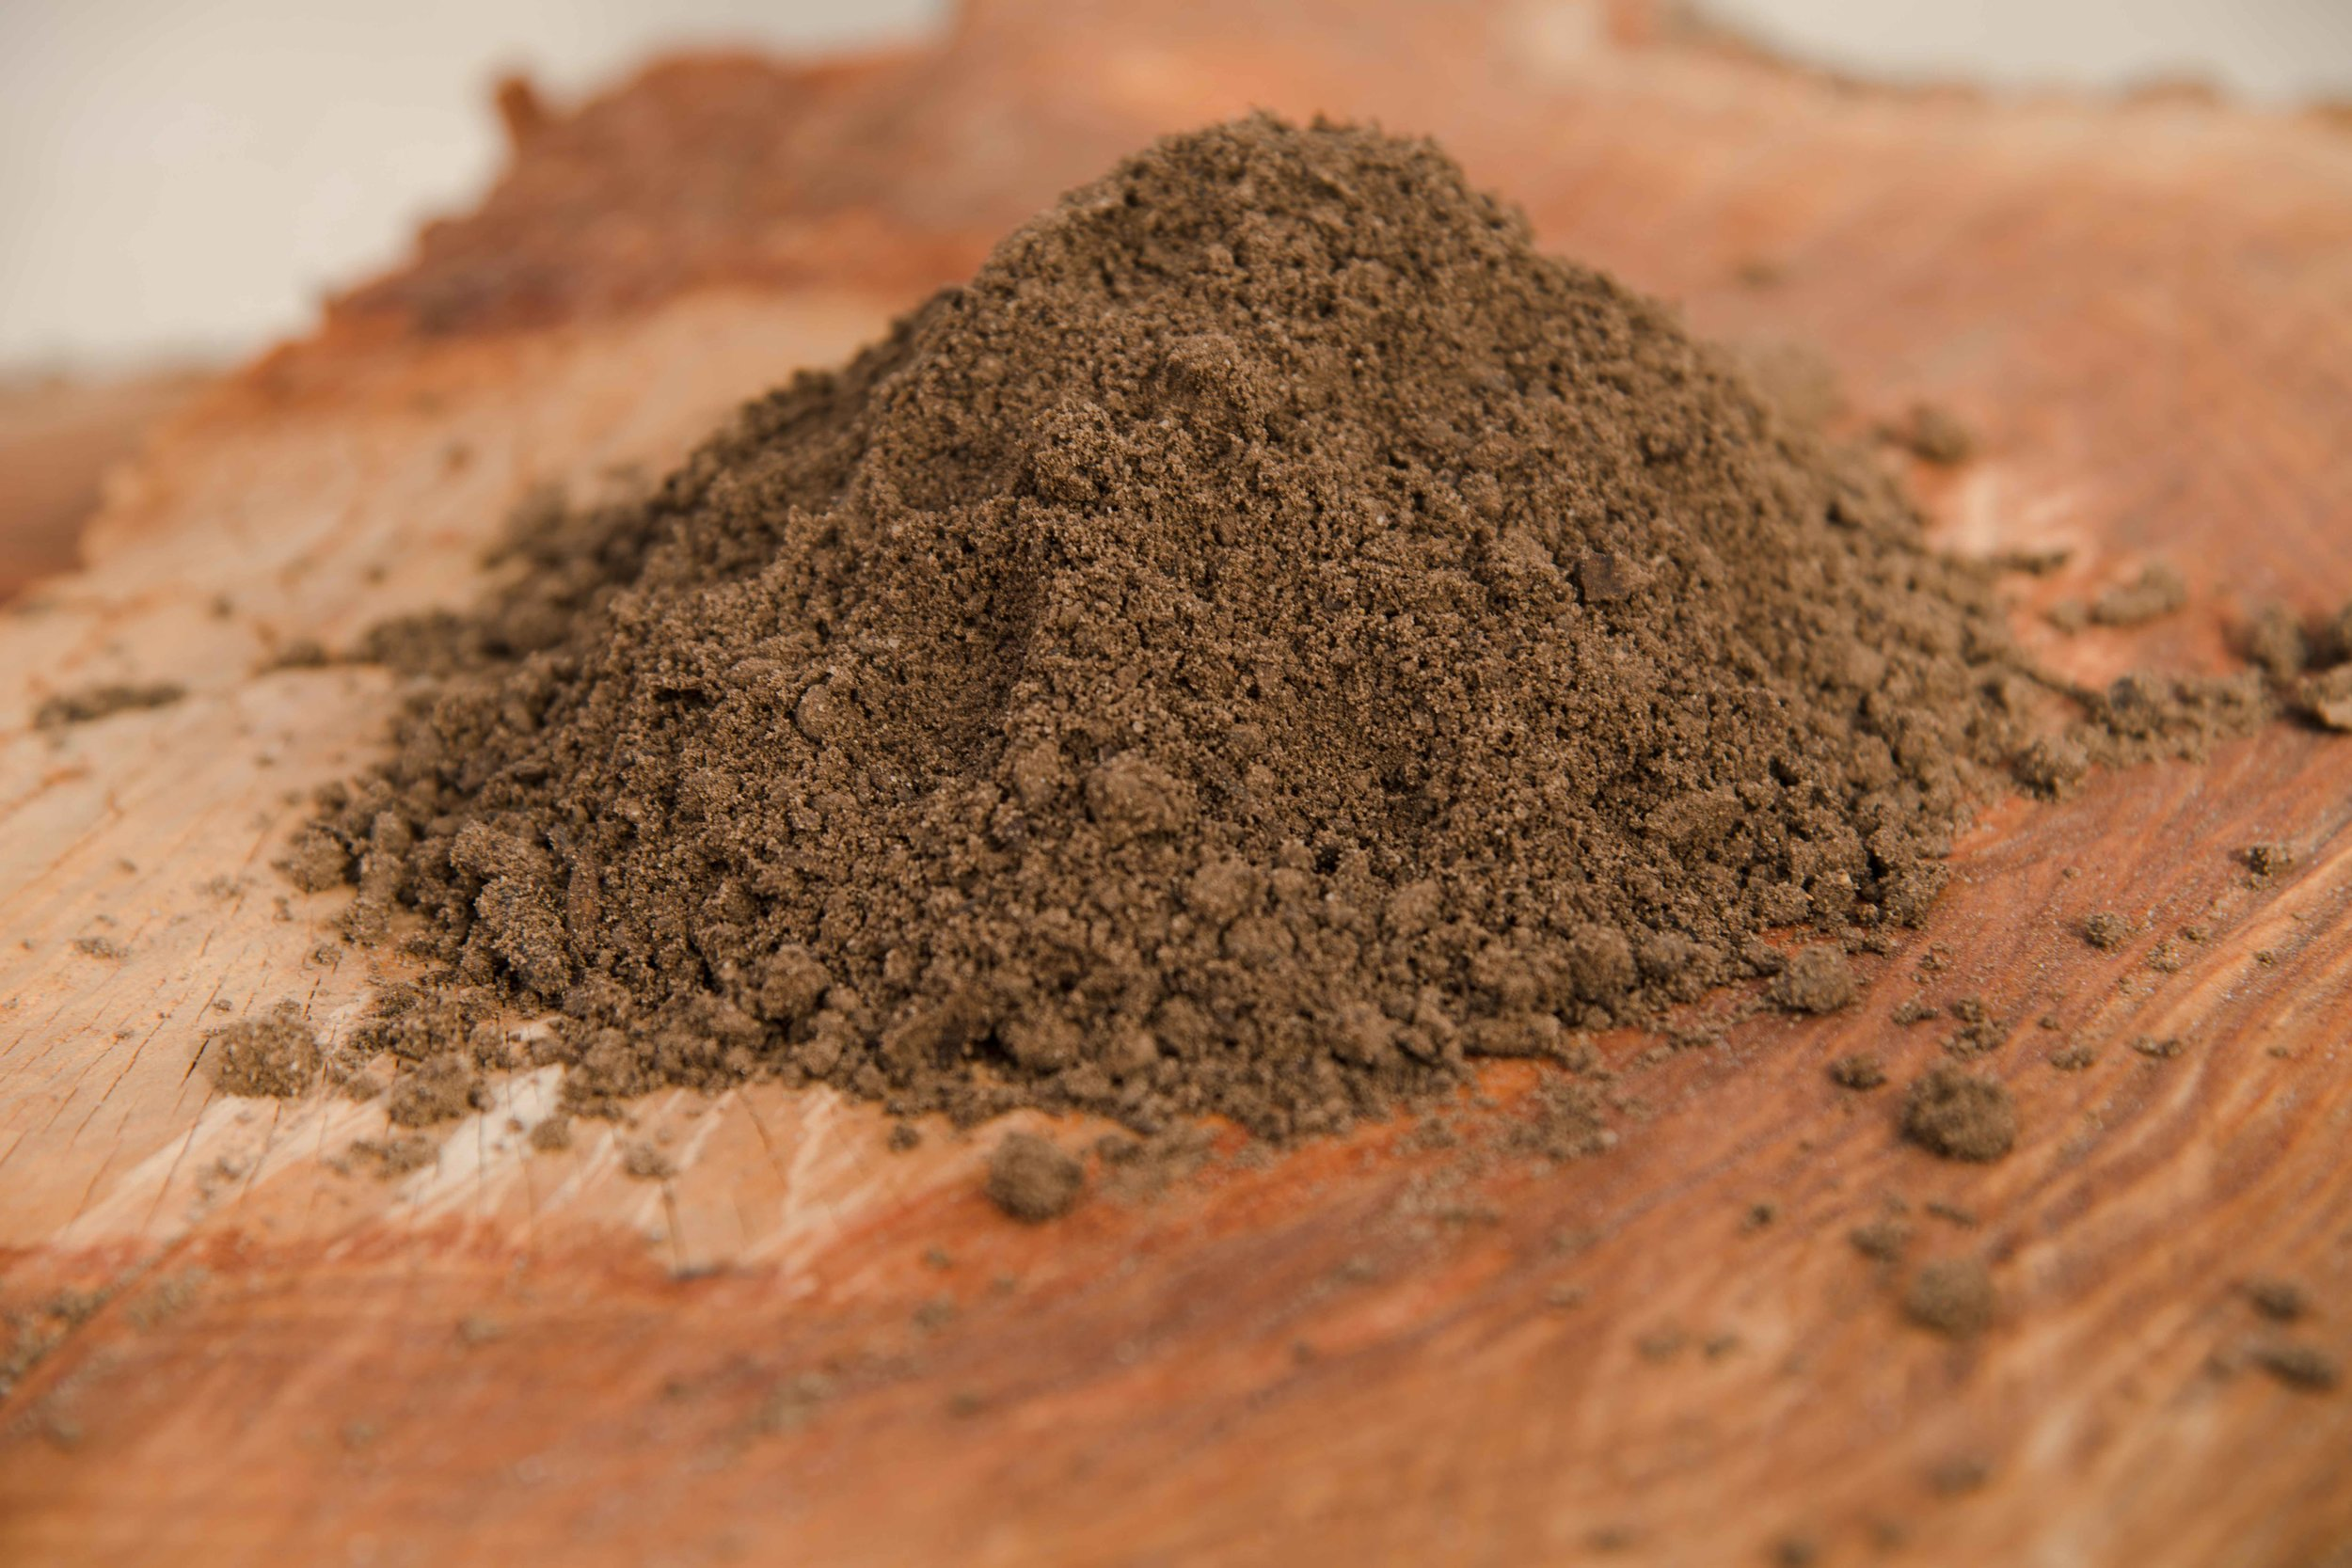 Rich Mix - A pulverized and screened soil blend, which includes the Murphy rich top soil as well as our compost. This ready to use product is formulated to improve plant growth for flower beds, vegetable gardens, seed beds, leveling and top dressing lawns.